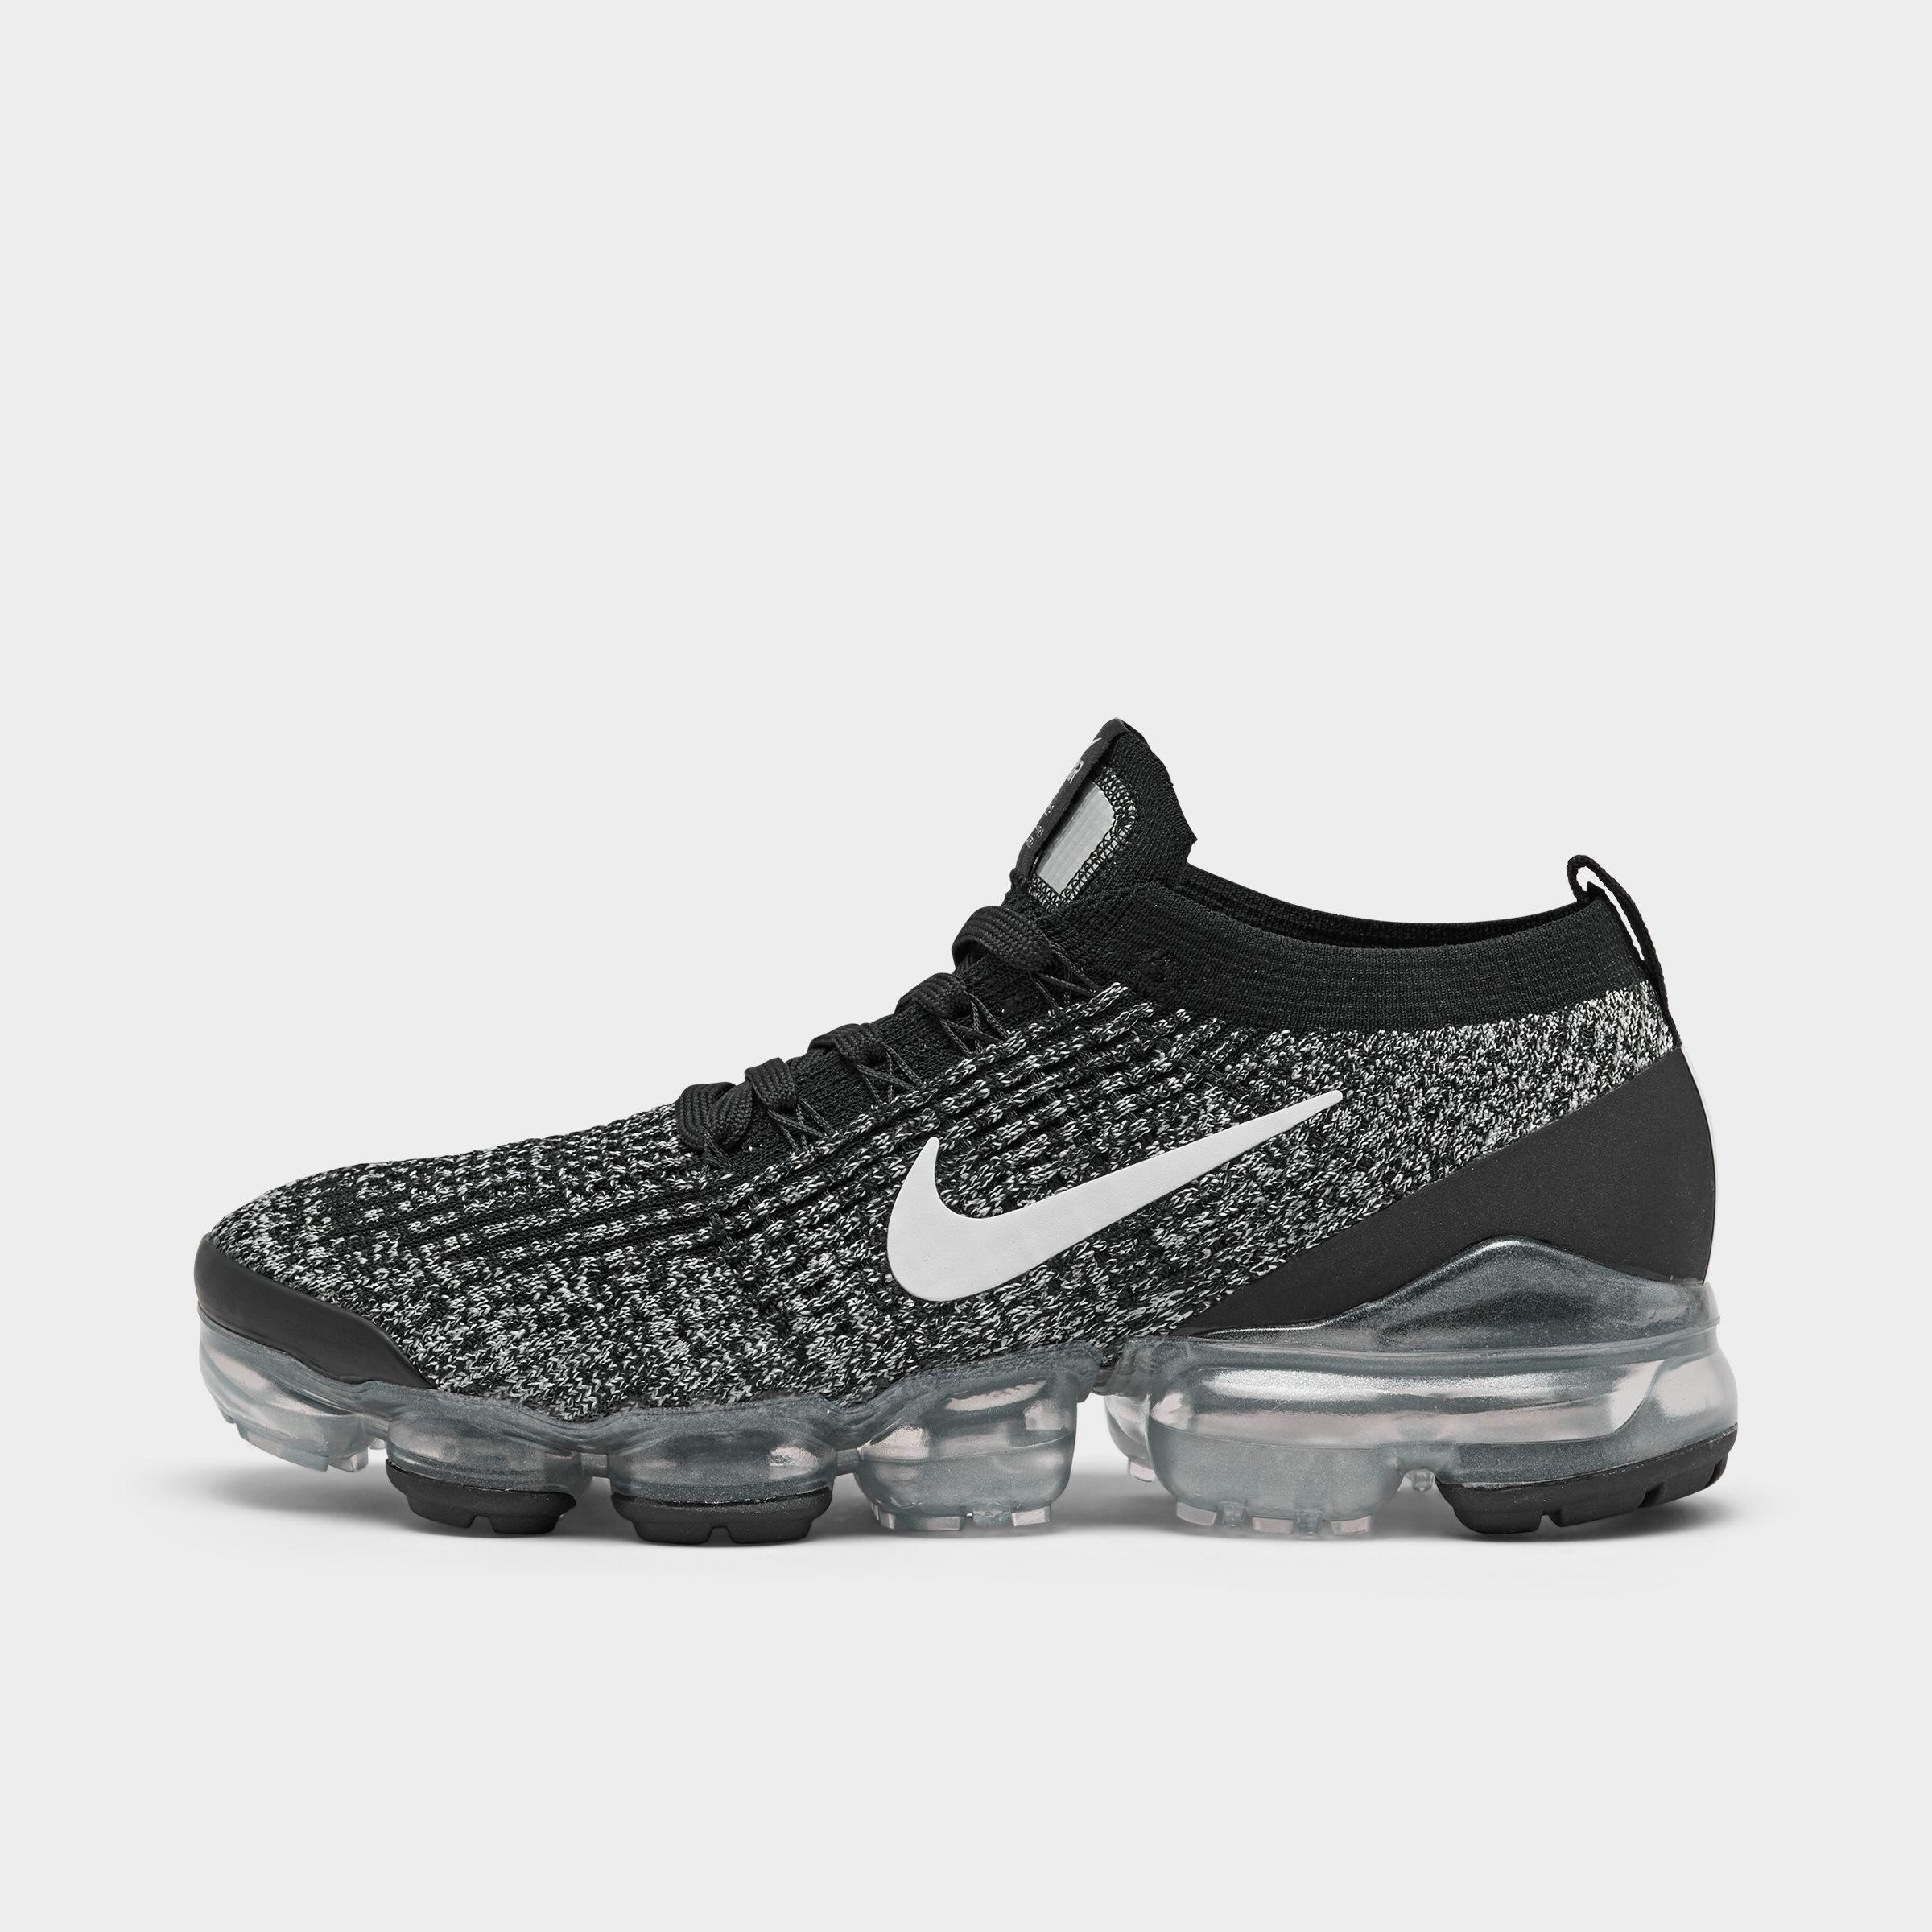 Wind nike vapormax 2019 on market place between 2020